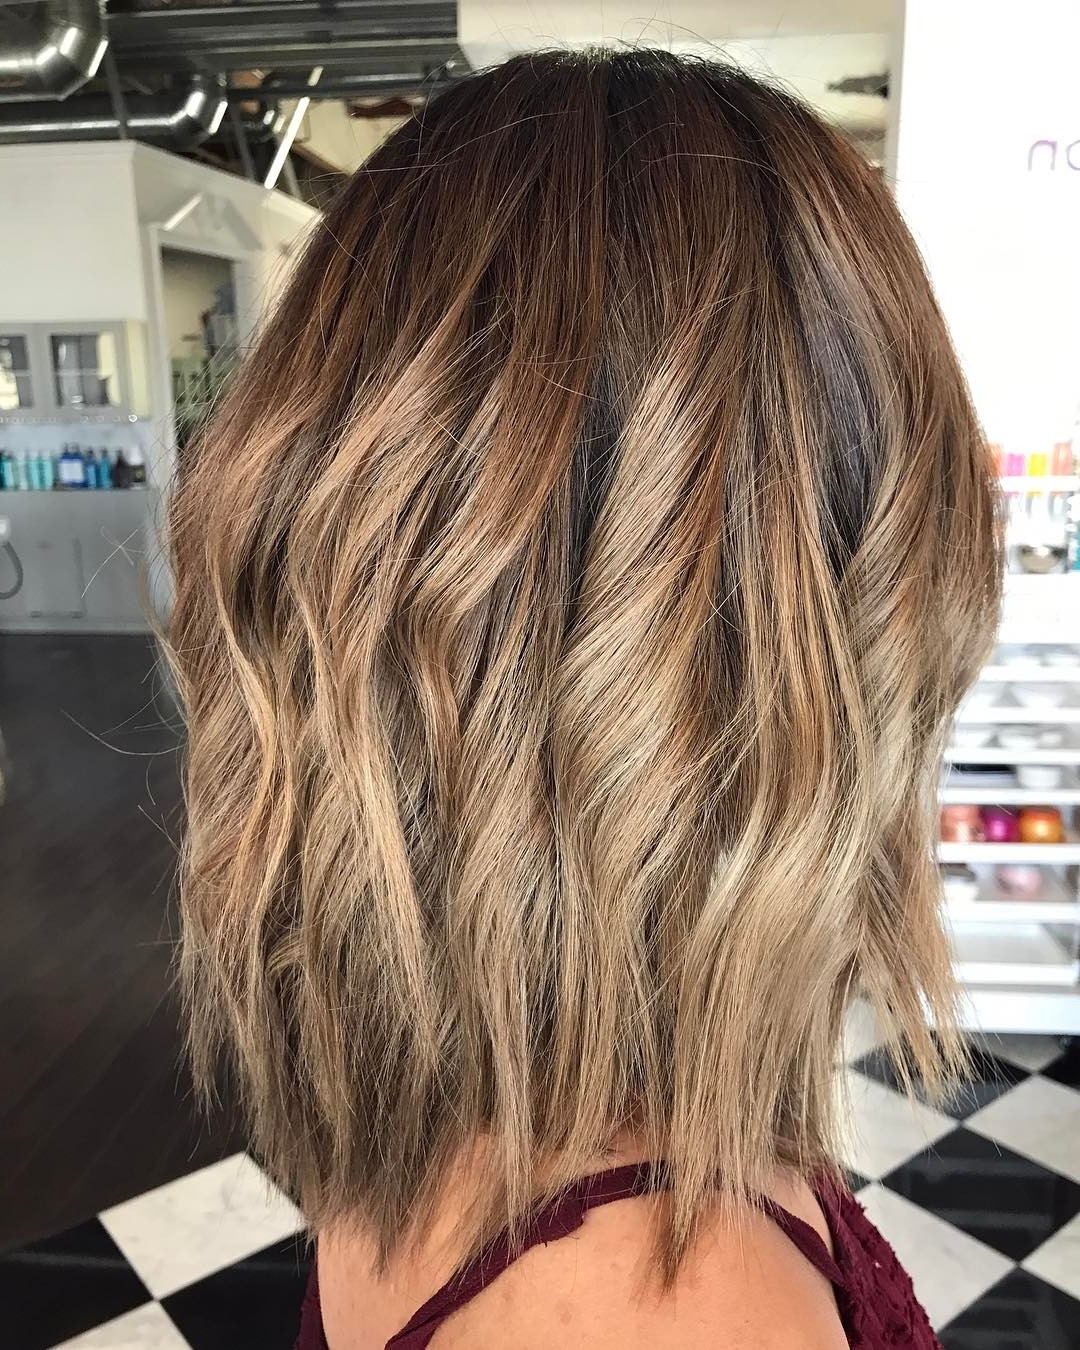 Preferred Pastel And Ash Pixie Hairstyles With Fused Layers For 10 Layered Bob Hairstyles – Look Fab In New Blonde Shades! – Popular (View 16 of 20)